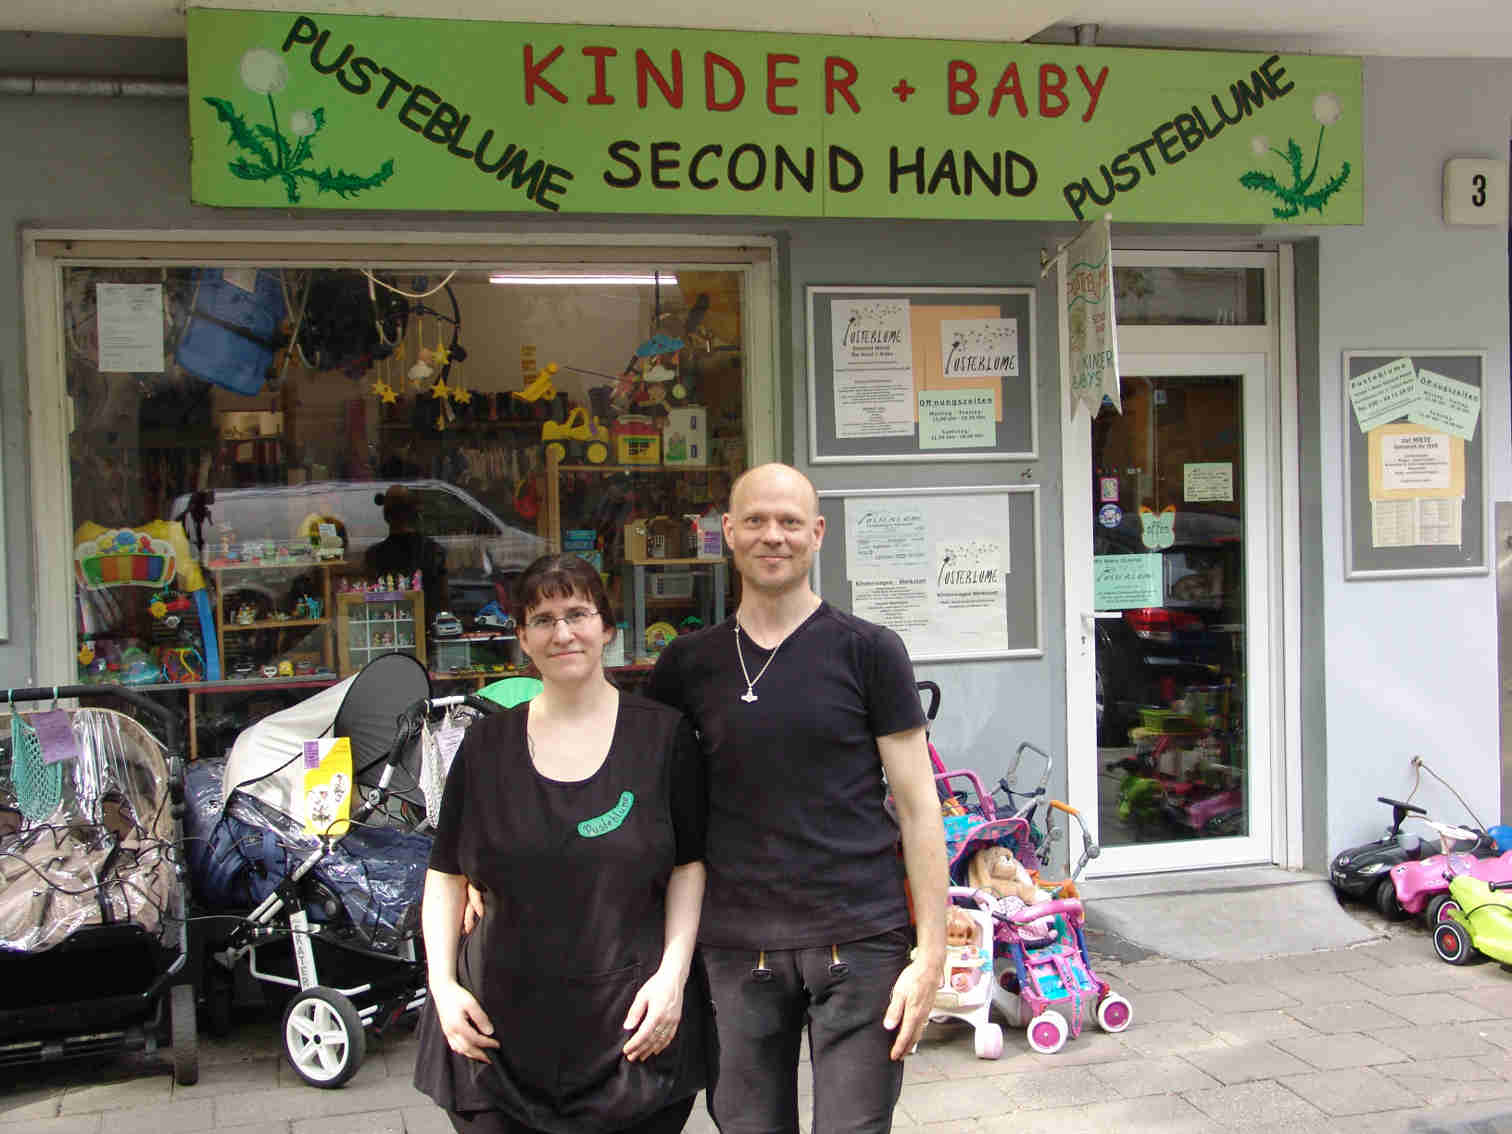 reputable site 368de ff181 Pusteblume - Kinder und Baby second hand